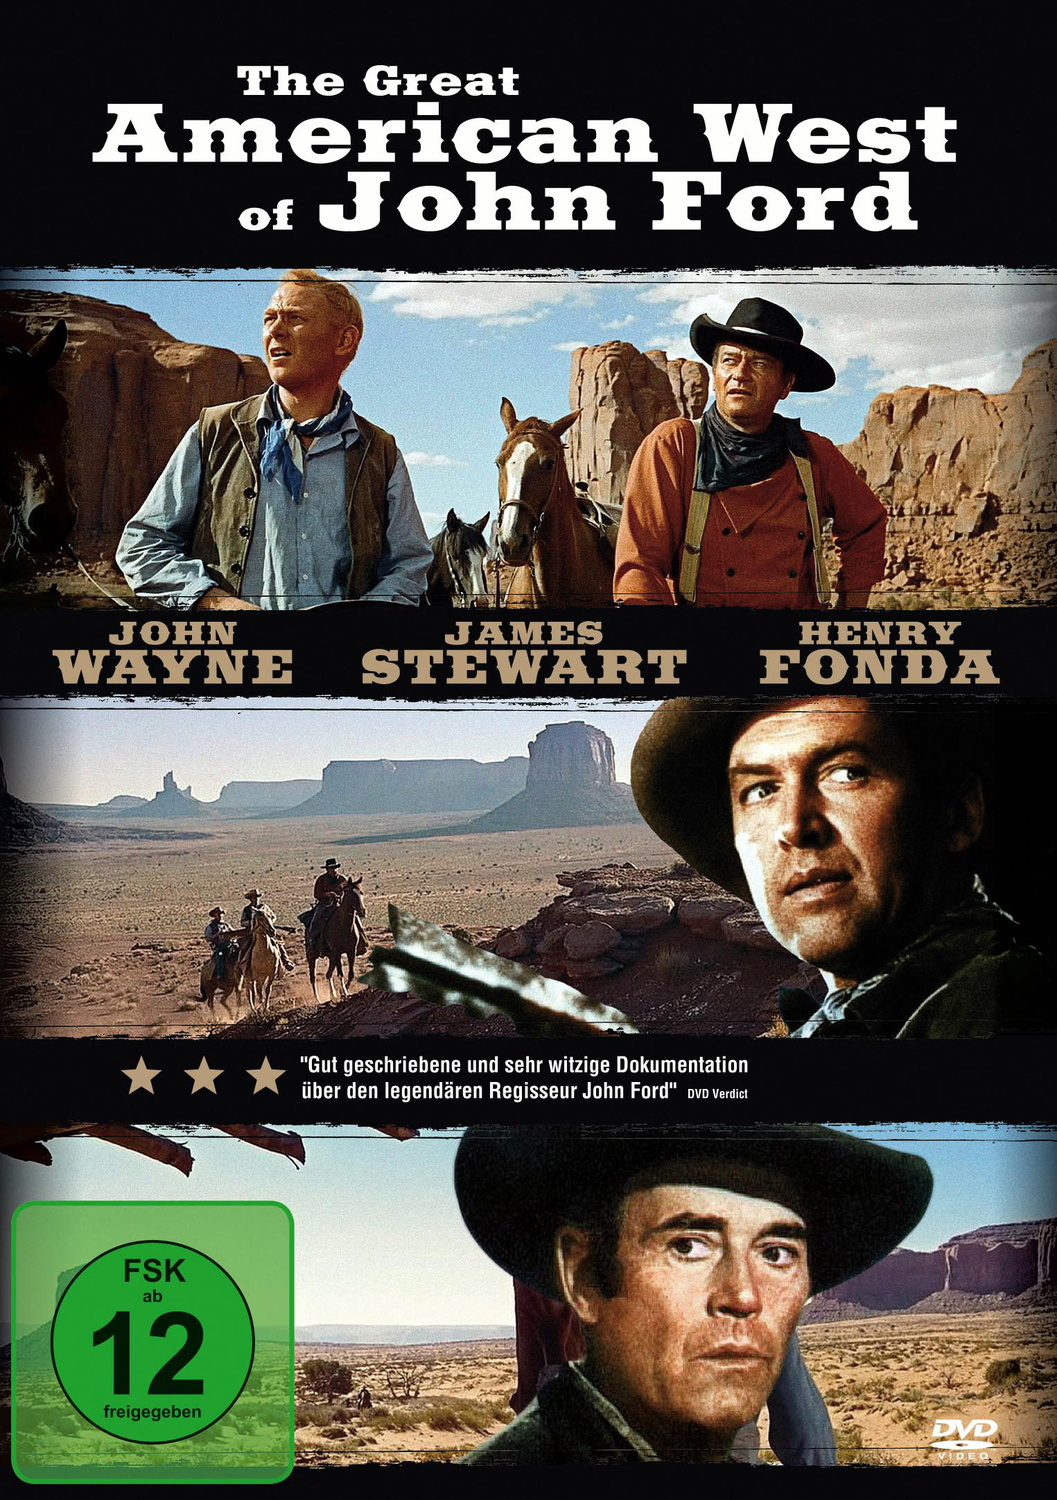 The Great American West of John Ford